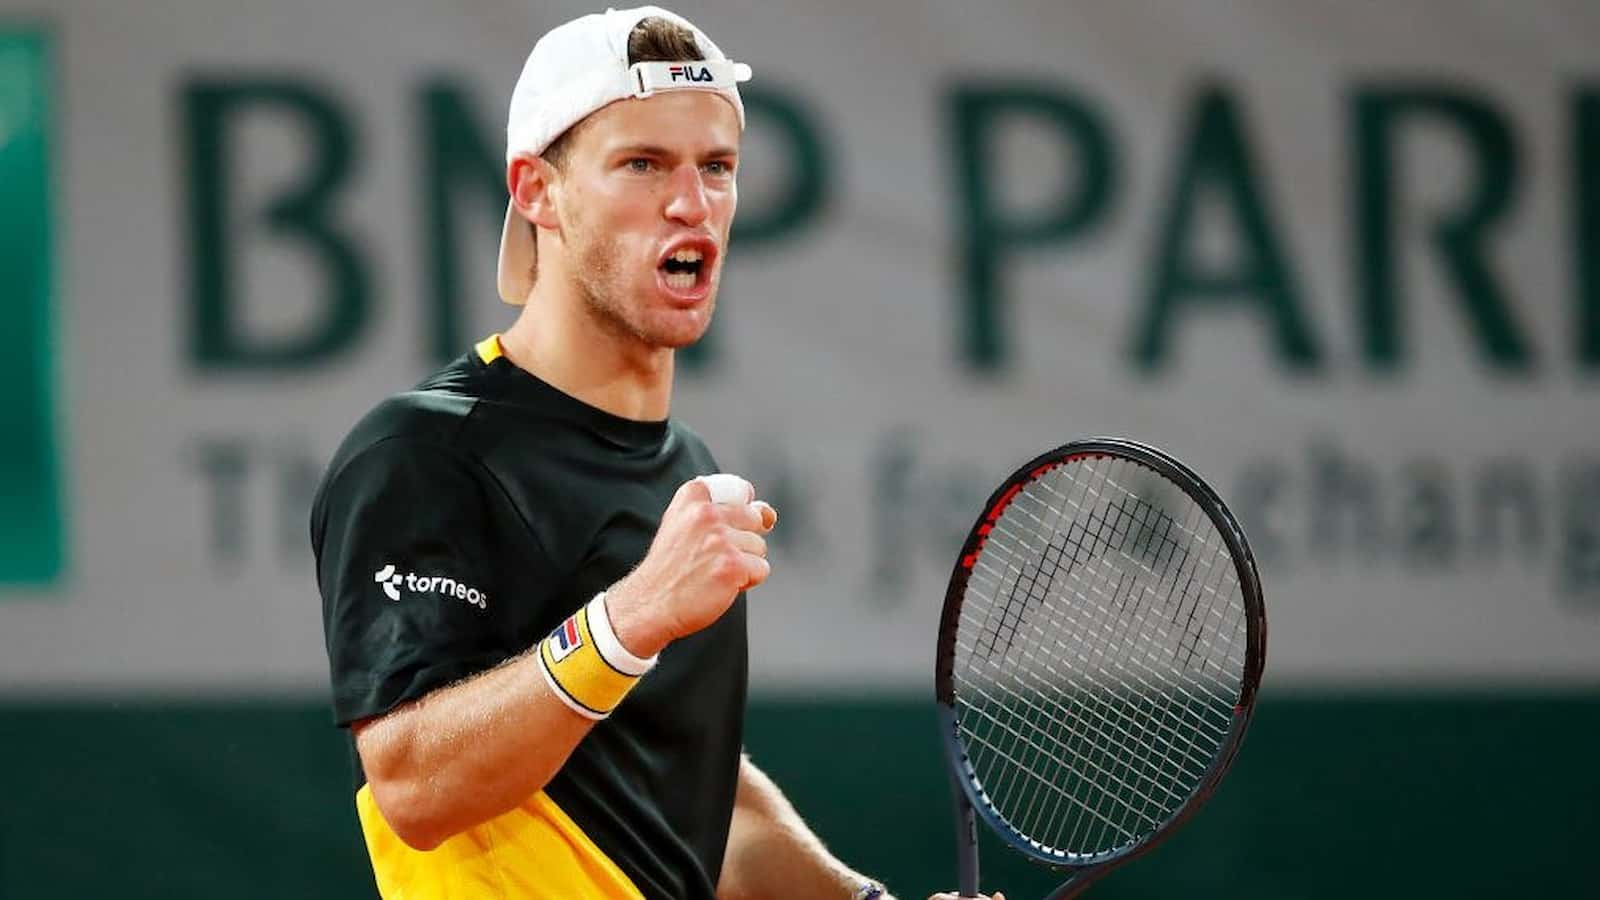 Diego Schwartzman will be the favourite in the upcoming Diego Schwartzman vs Felix Auger-Aliassime clash at the Rome Masters 2021.